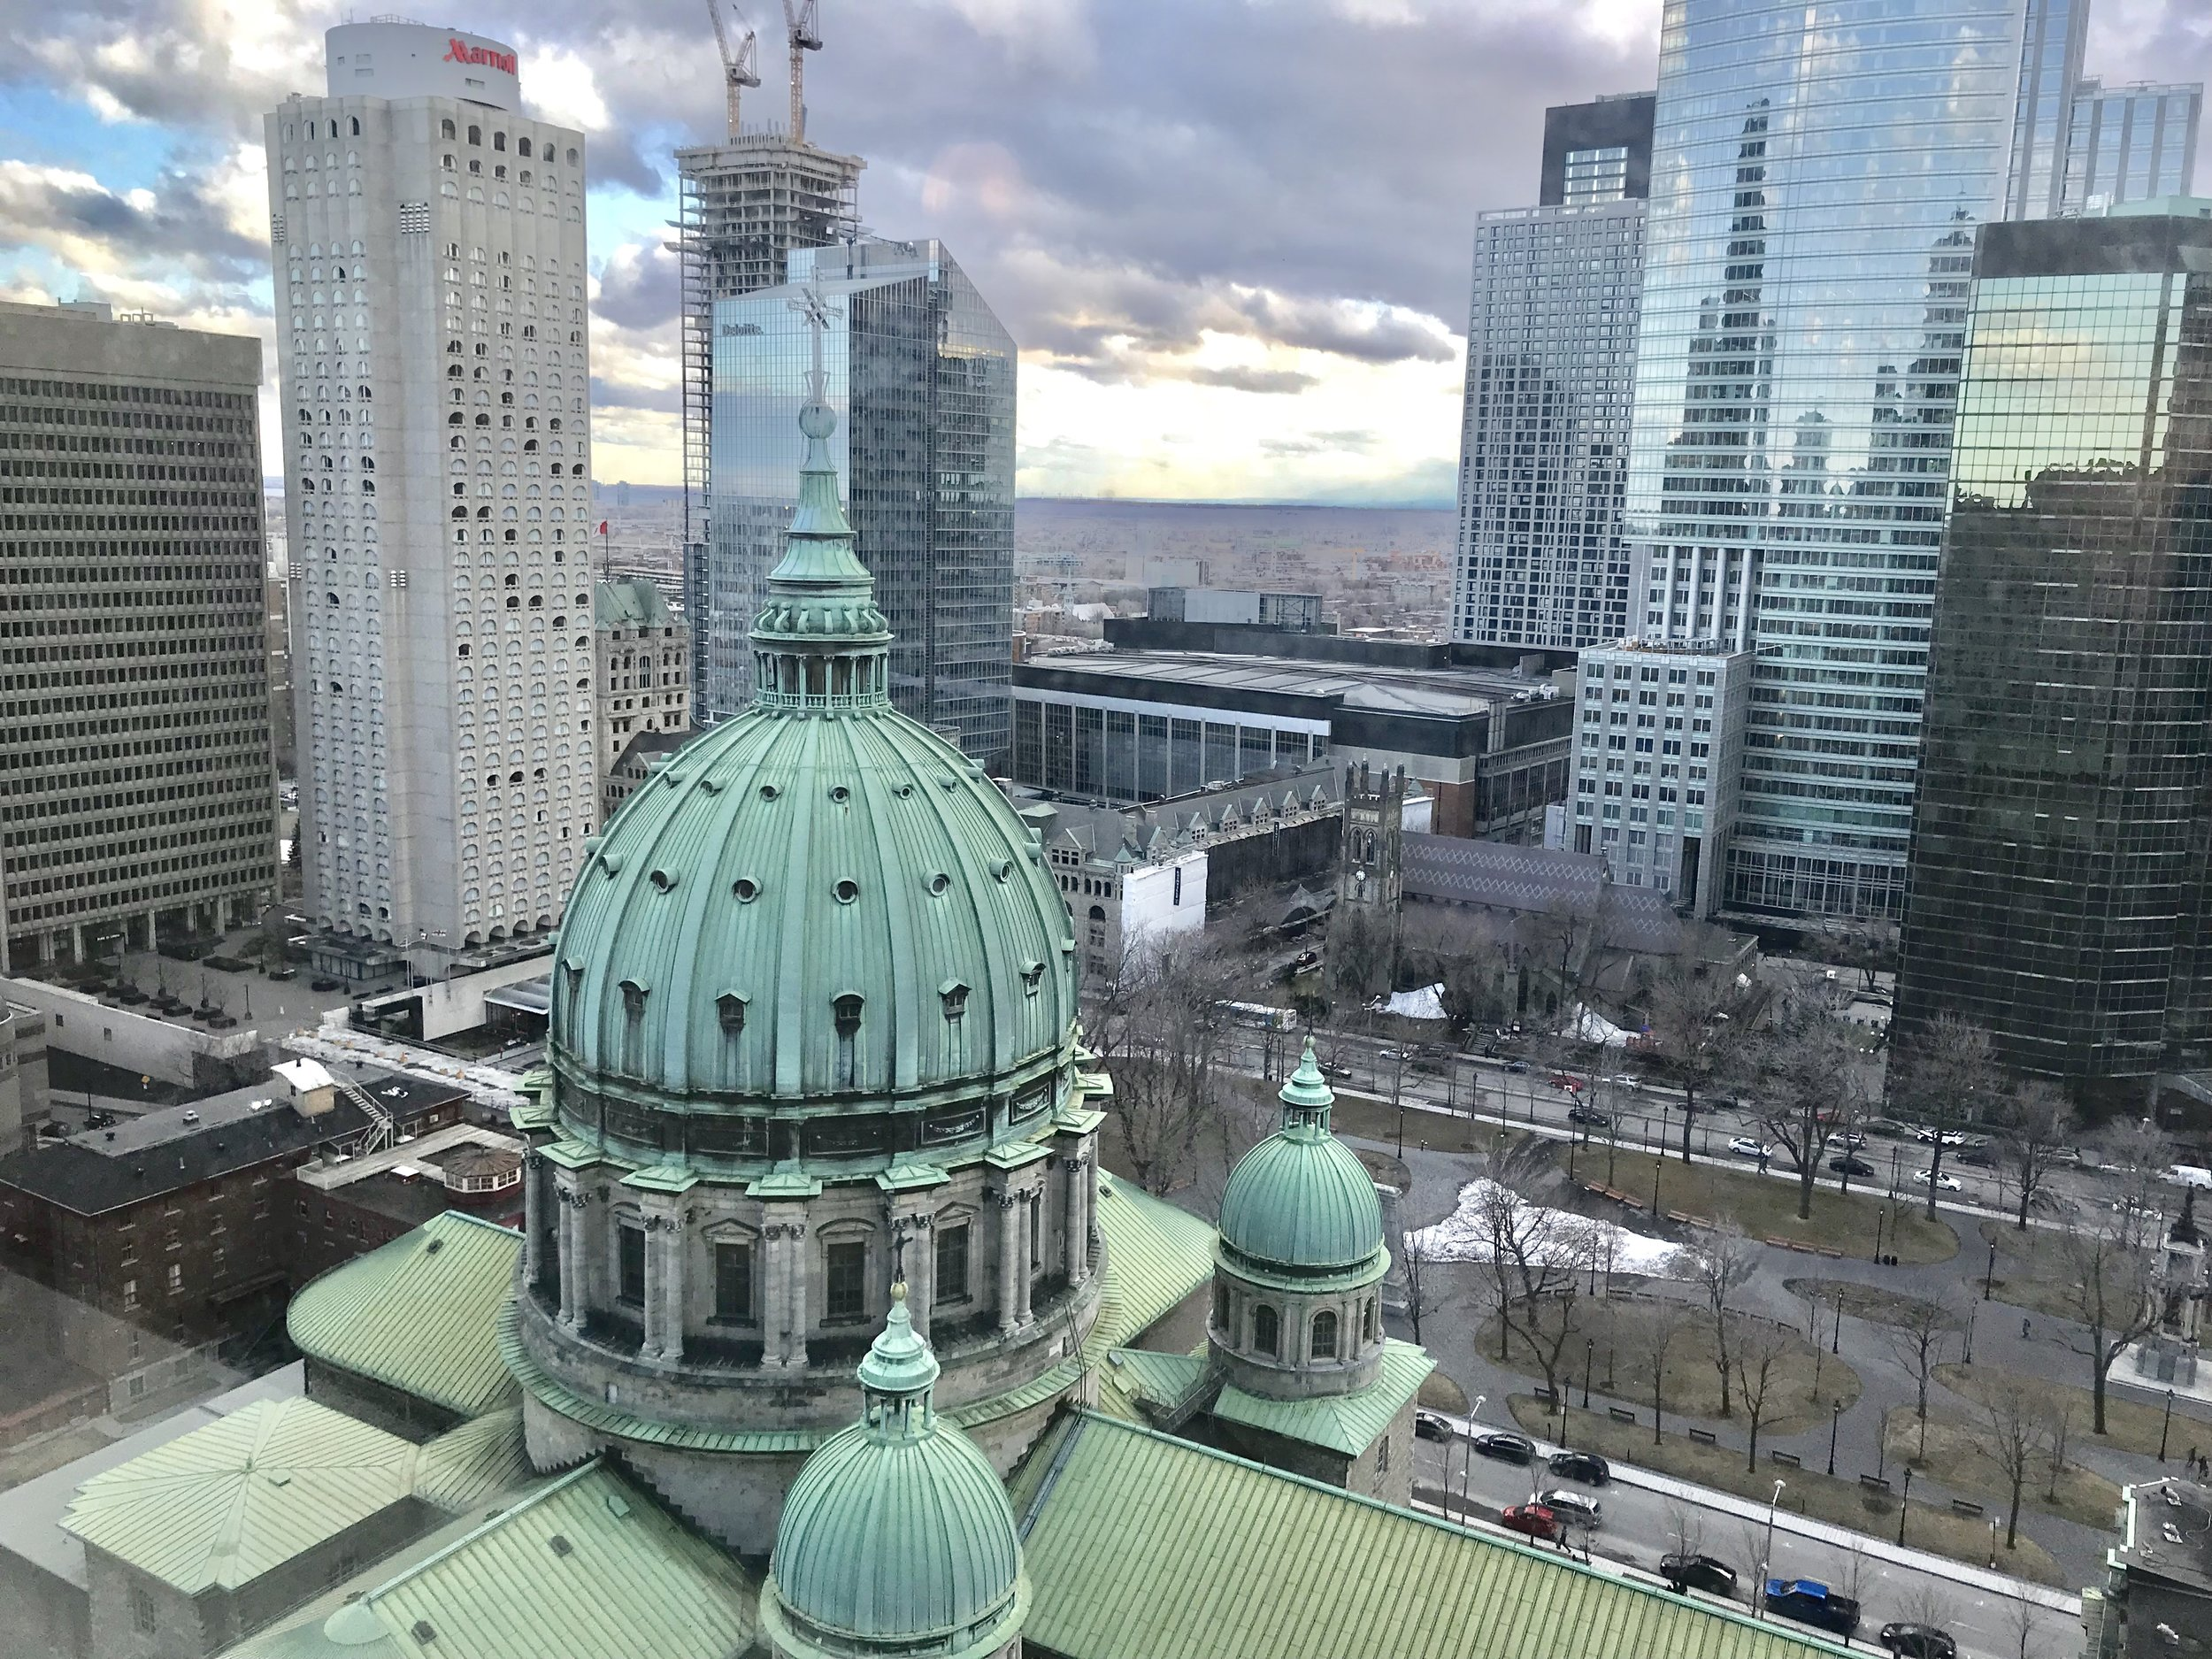 View from guest room at the Fairmont Queen Elizabeth - Montreal